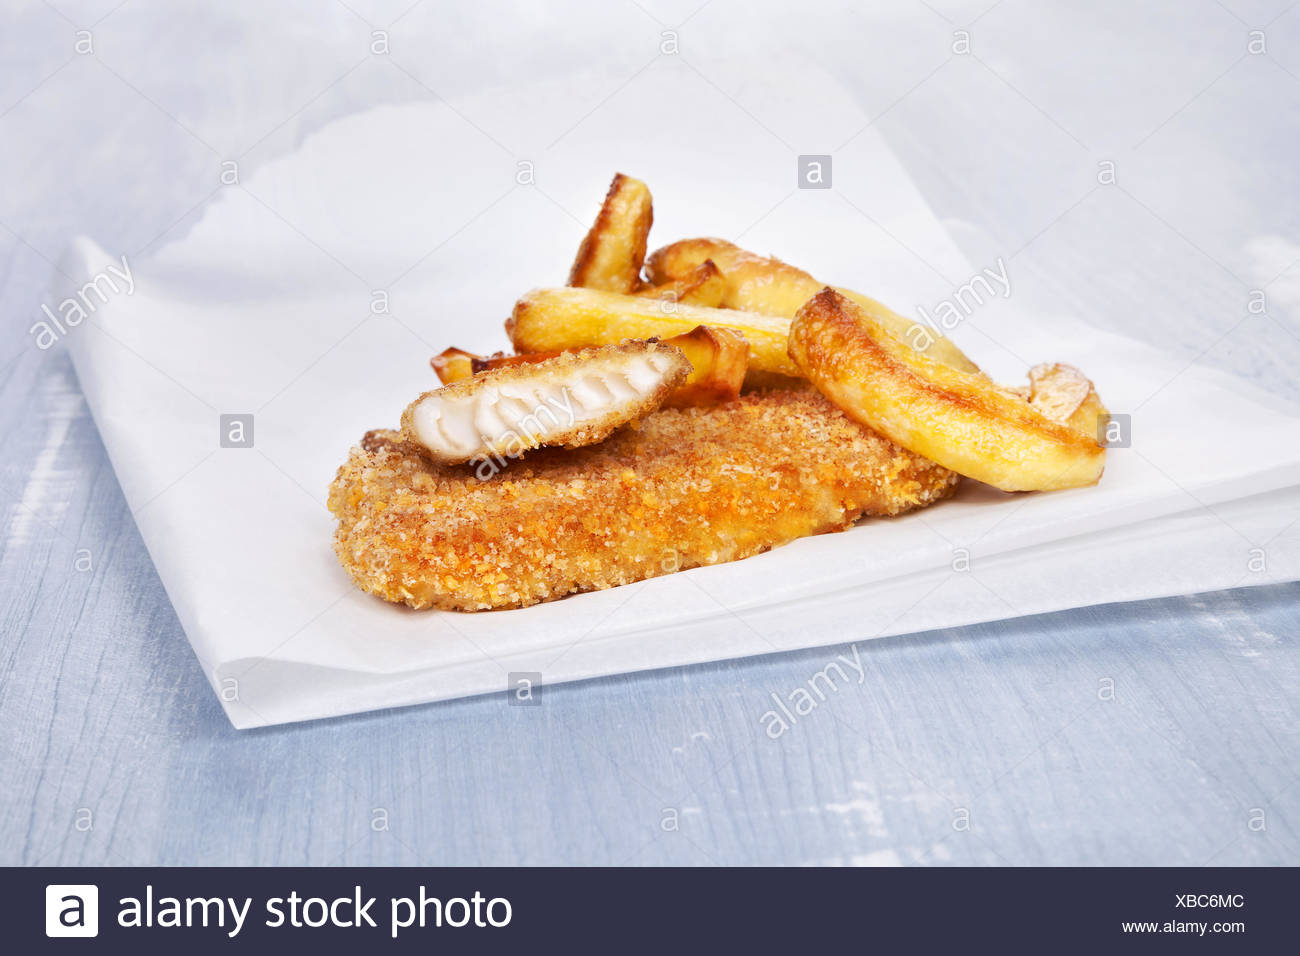 Luxurious fish and chips. - Stock Image